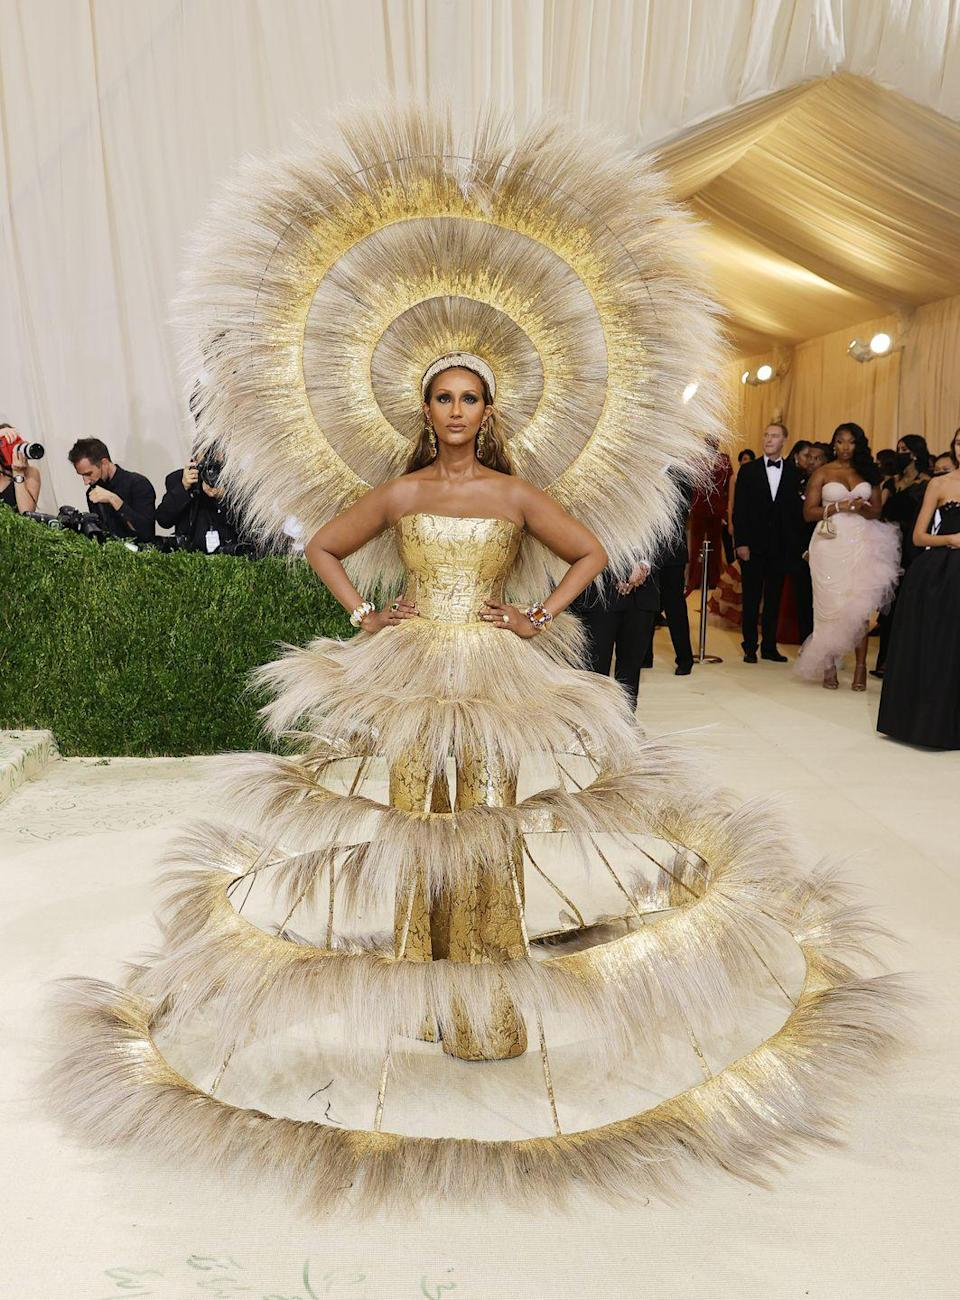 """<p>It takes a lot to steal attention on the Met Gala red carpet, but Iman managed to do exactly this in a striking look by Harris Reed. The model wore a completely handmade crinoline and gold leaf gown, jacquard bustier and flares, with an enormous statement hat which Reed created in collaboration with Vivienne Lake. The stylist described the moment as their """"biggest dream come true to date"""".</p>"""